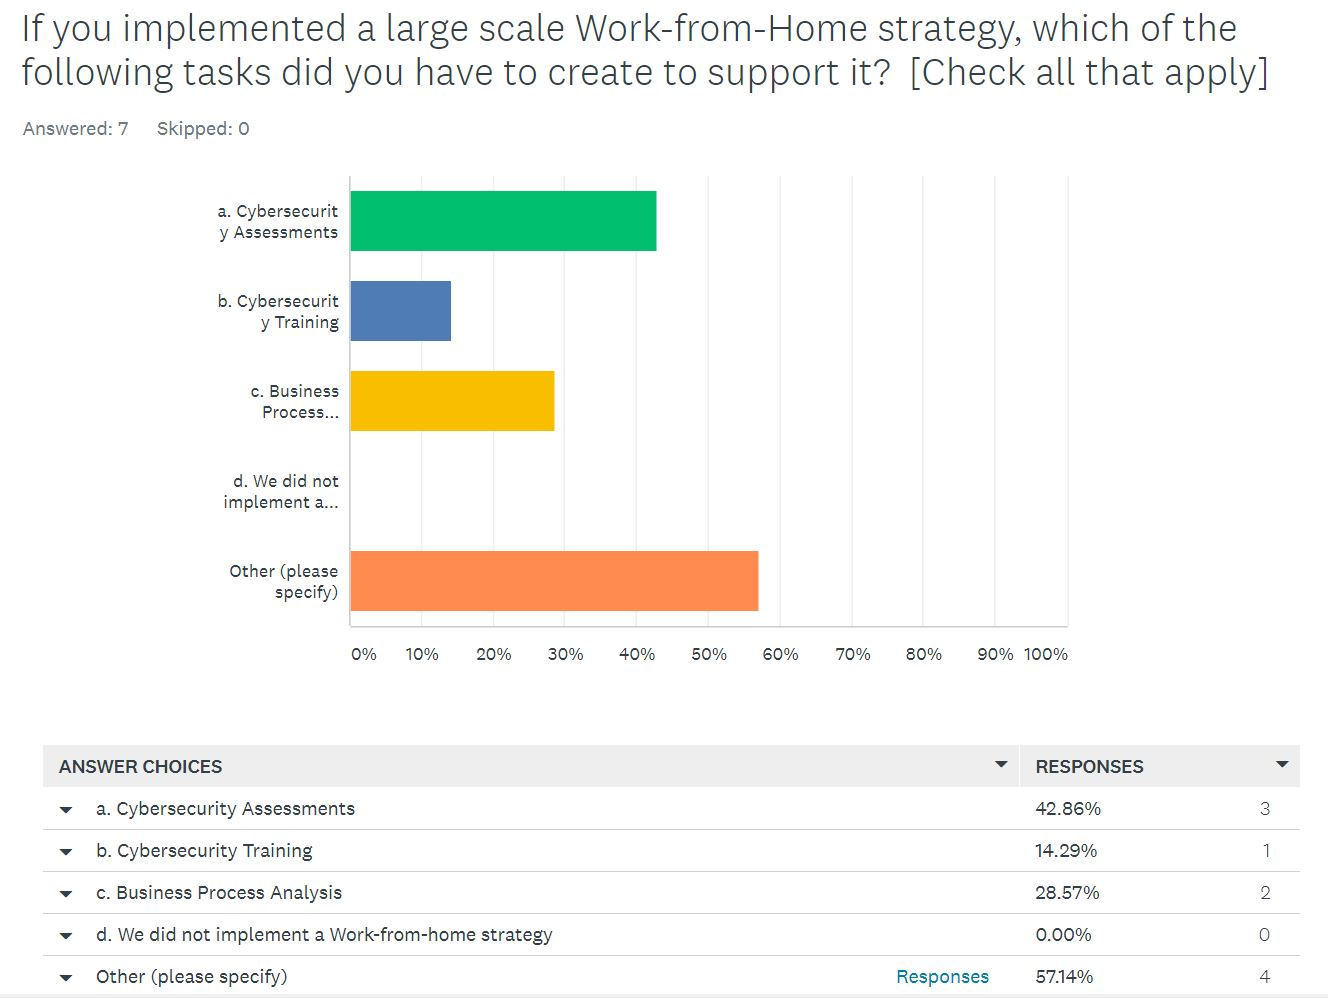 WFH strategy tasks created to support it